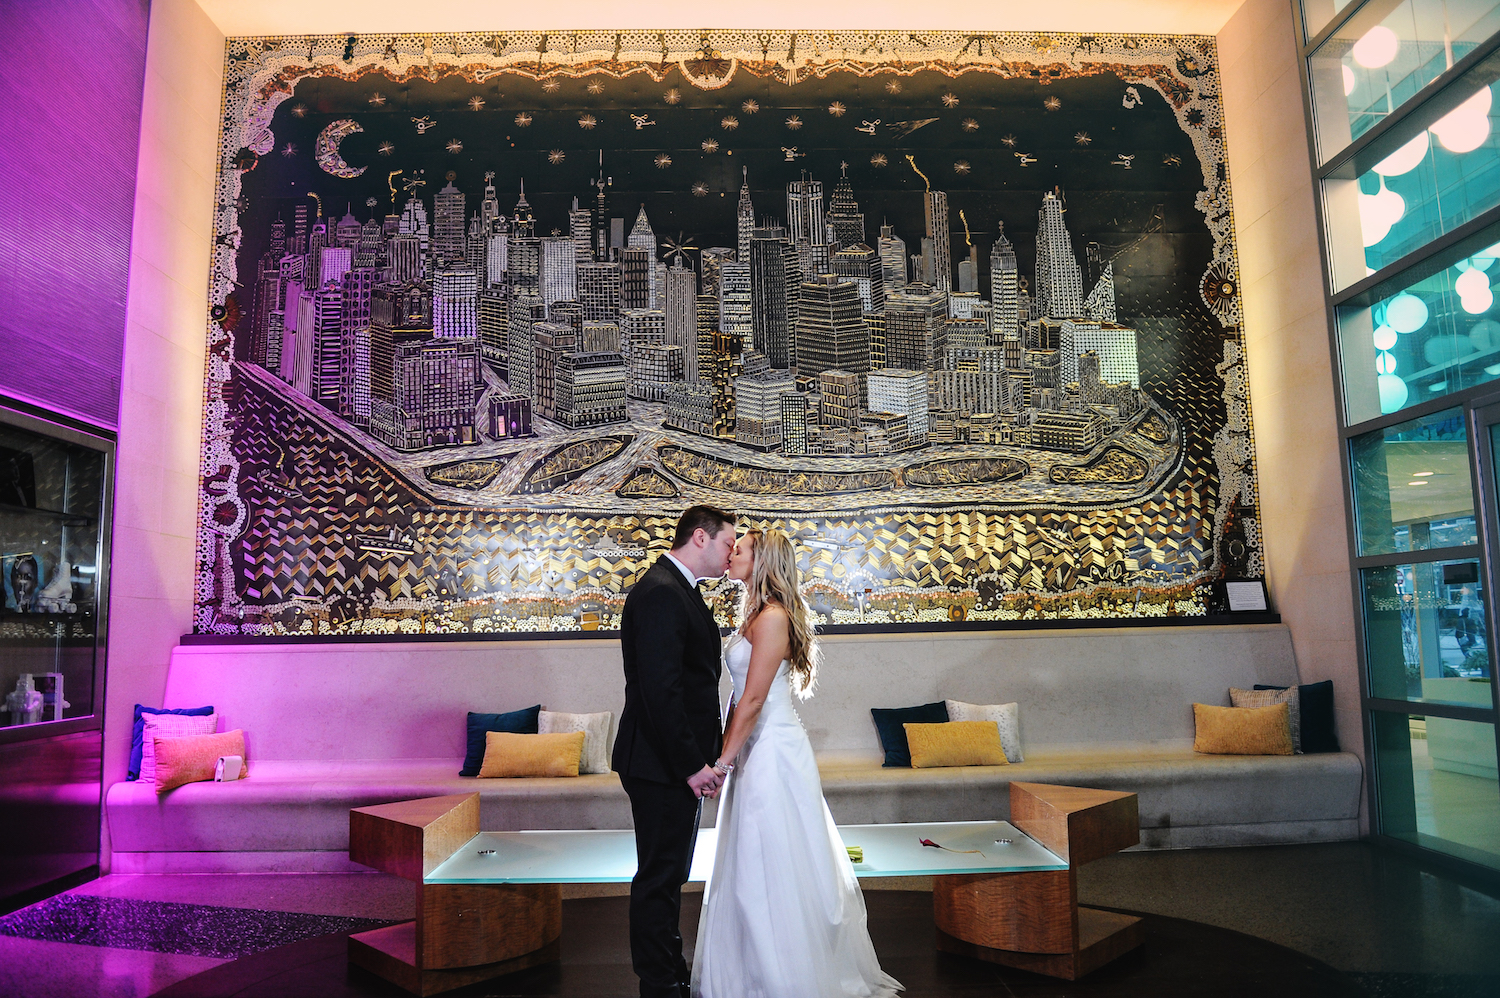 Annie and Adam – Wedding Photo Highlights from The W Hoboken in Hoboken, NJ